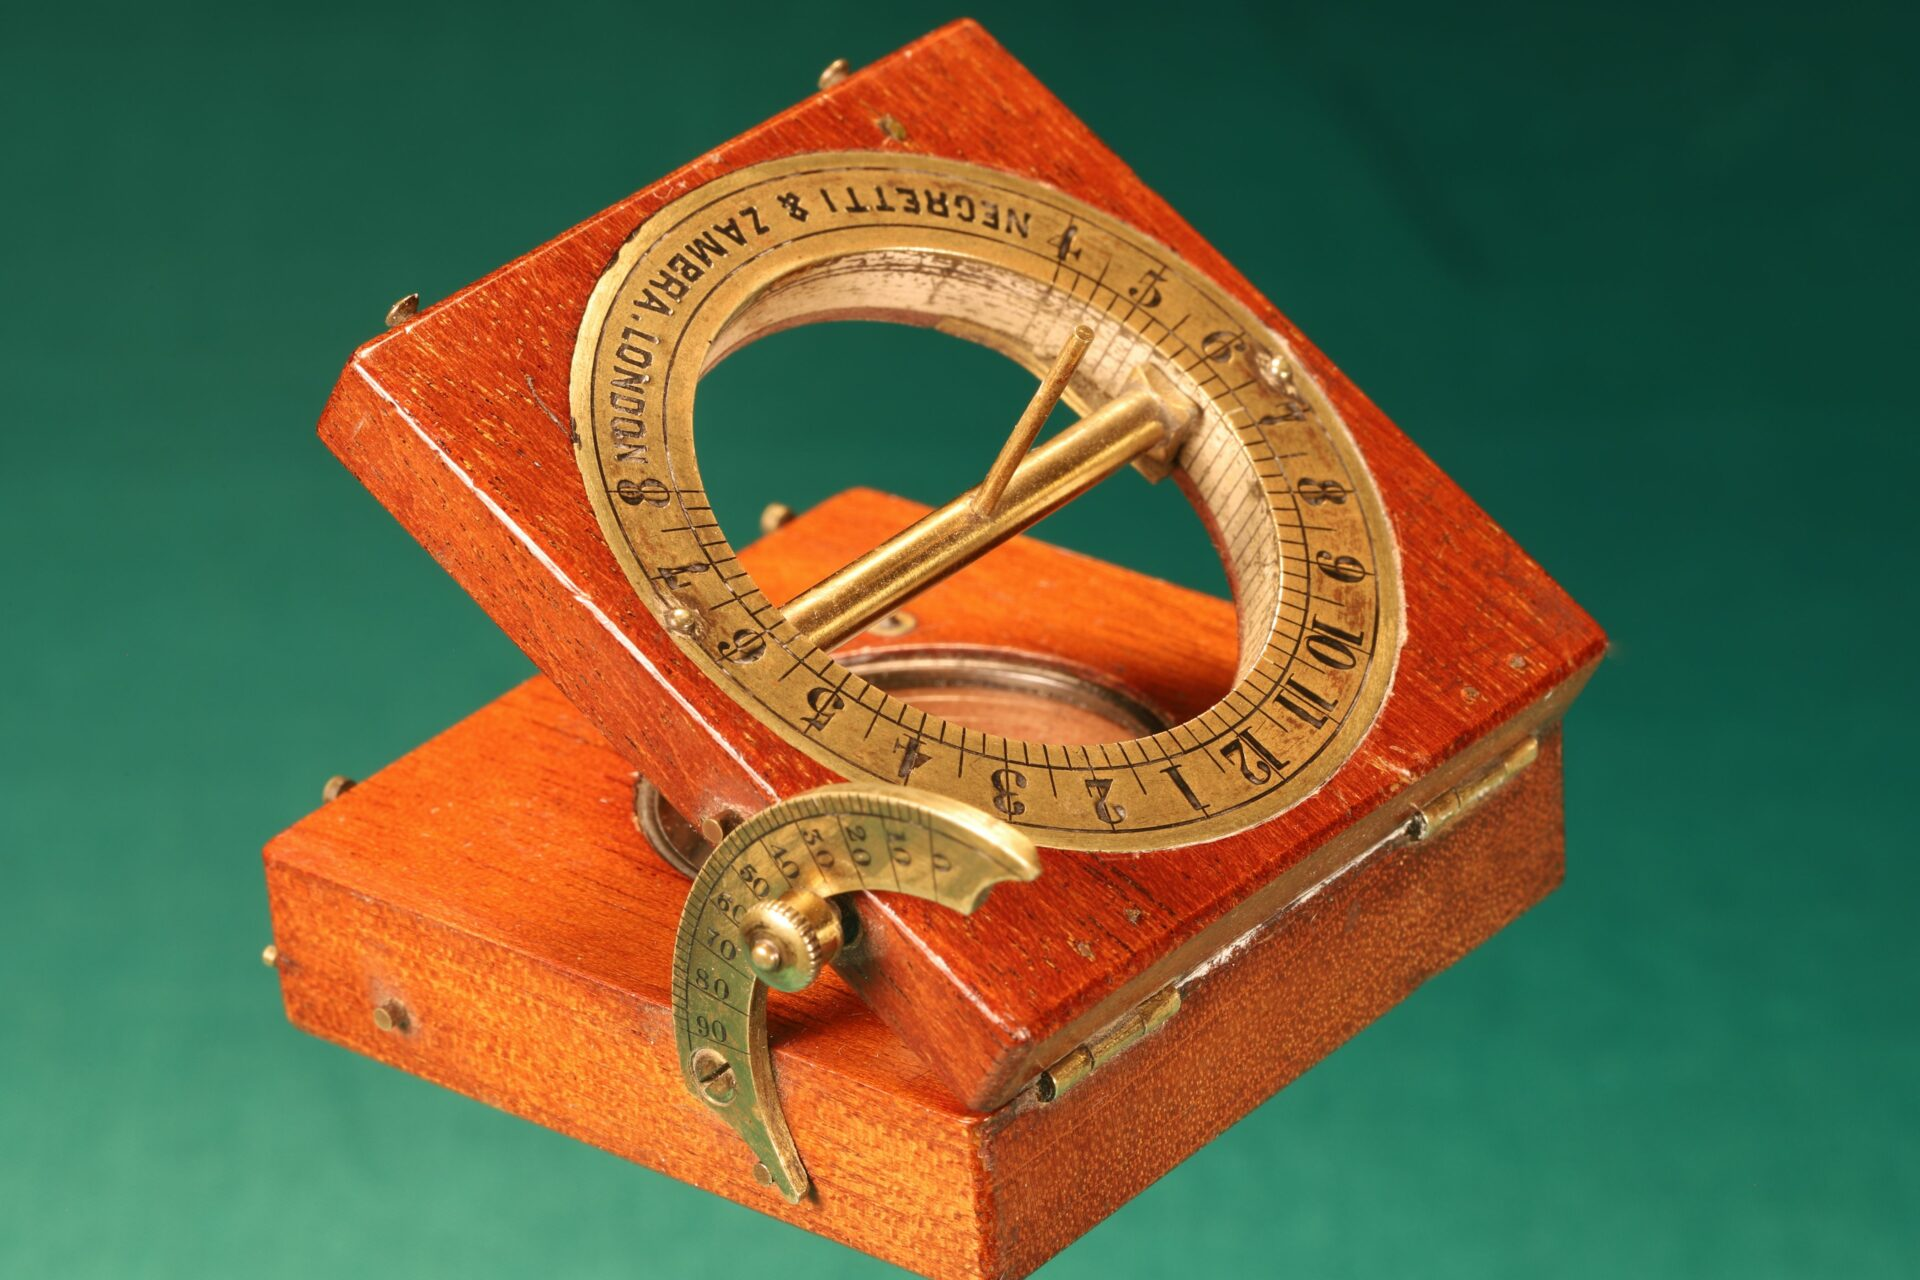 Image of open Francis Barker Equinoctial Compass Retailed by Negretti & Zambra c1870 with gnomon raised taken from righthandside